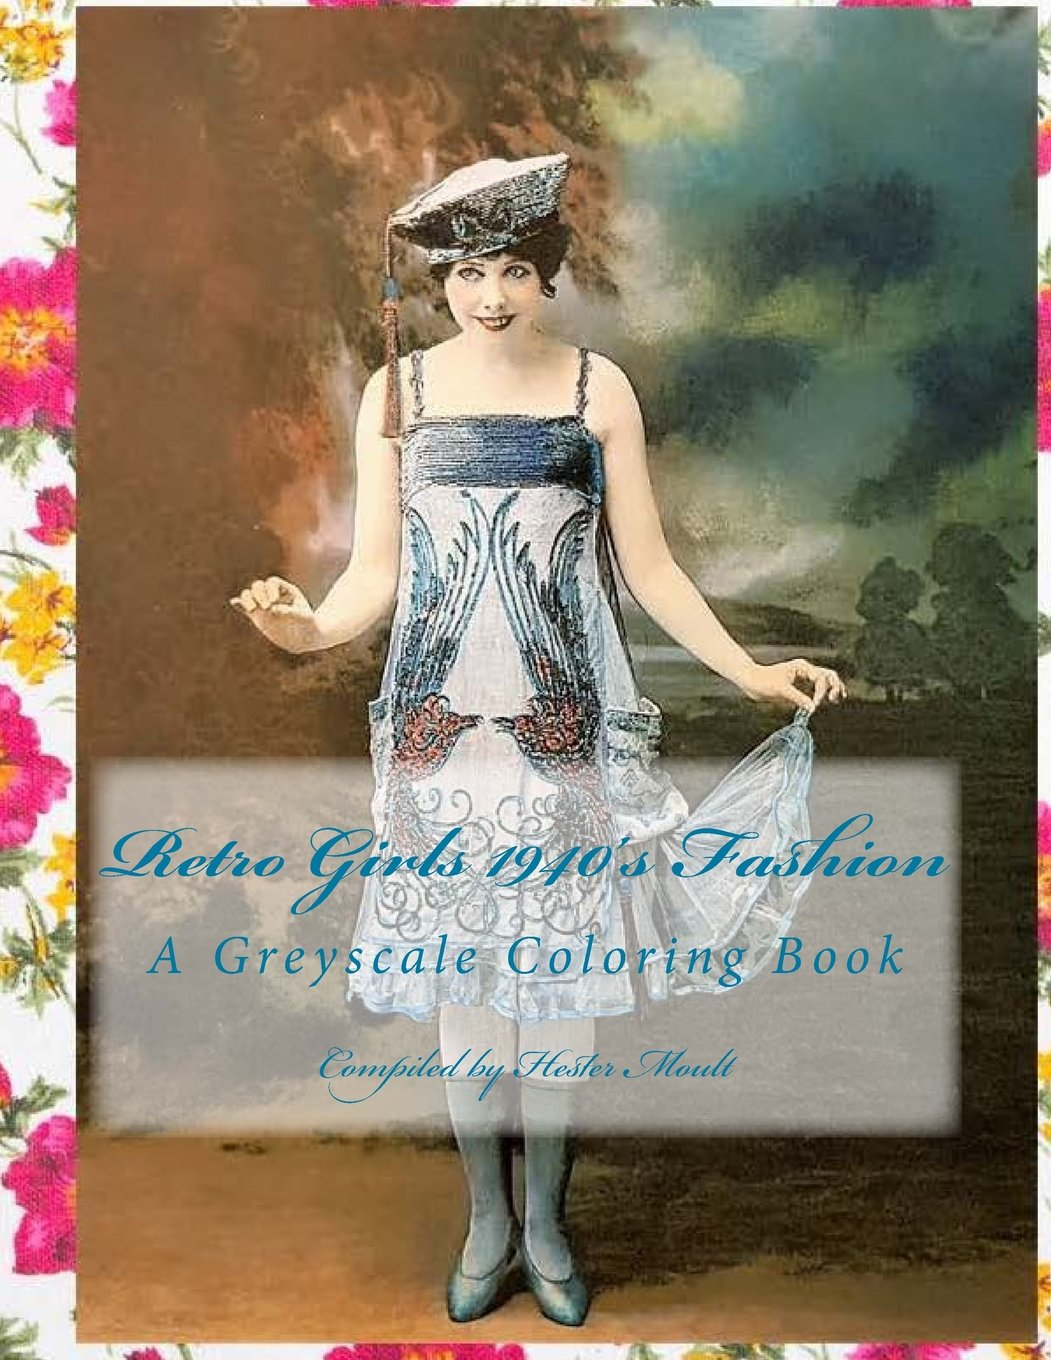 Retro Girls 1940's Fashion: A Greyscale Coloring Book (Volume 1): Hester  Moult: 9781717169624: Amazon.com: Books